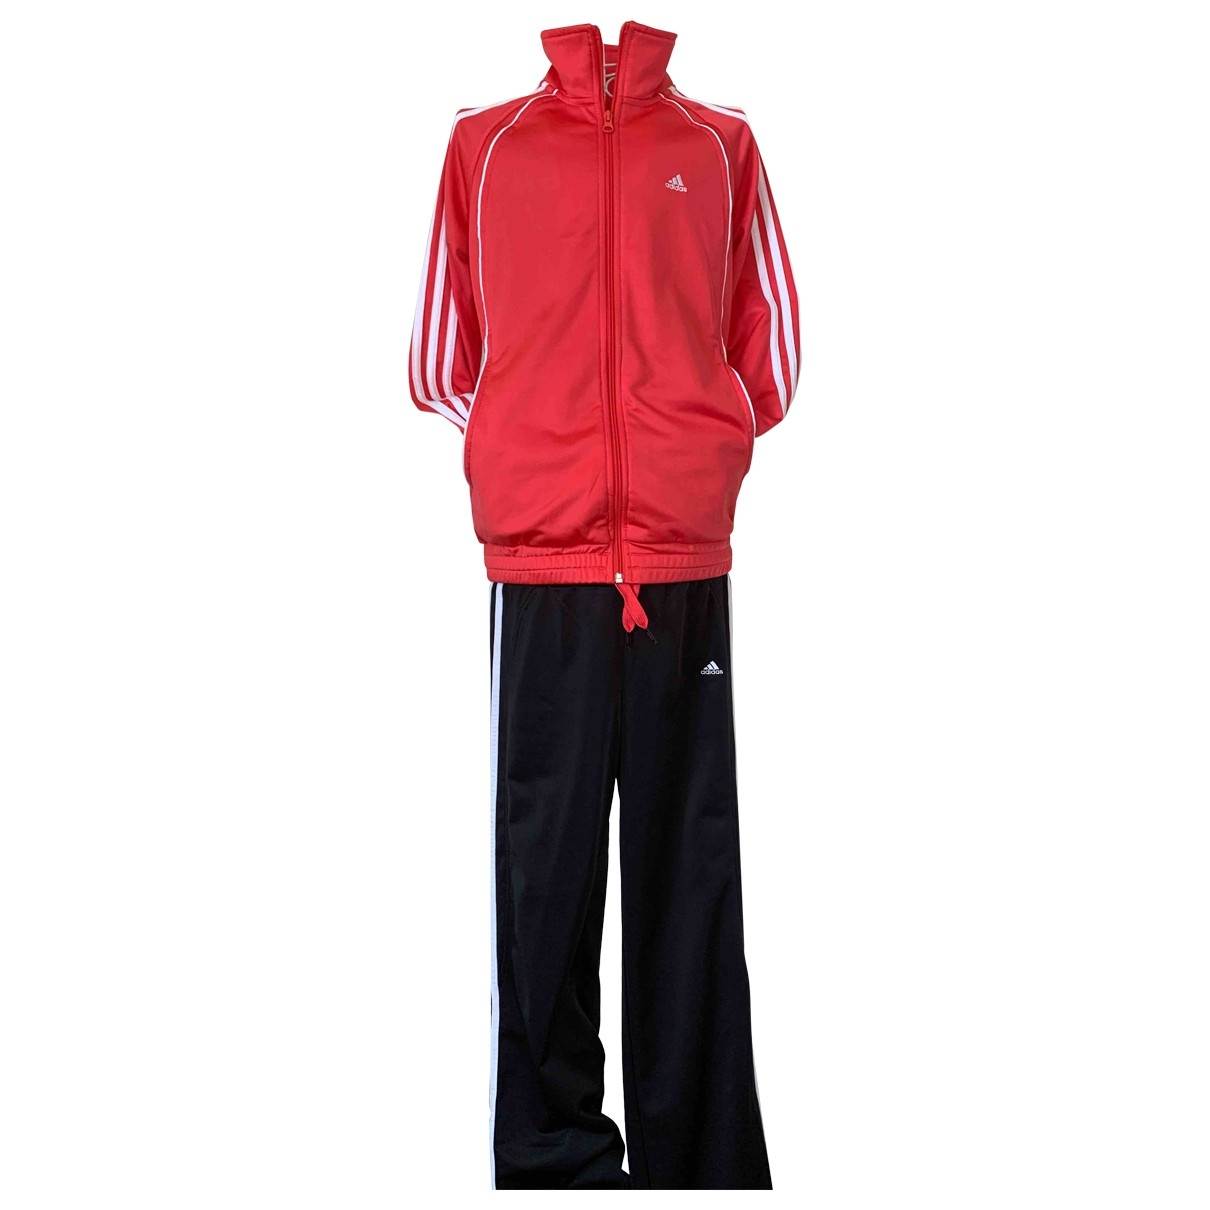 Adidas \N Outfits for Kids 14 years - S UK